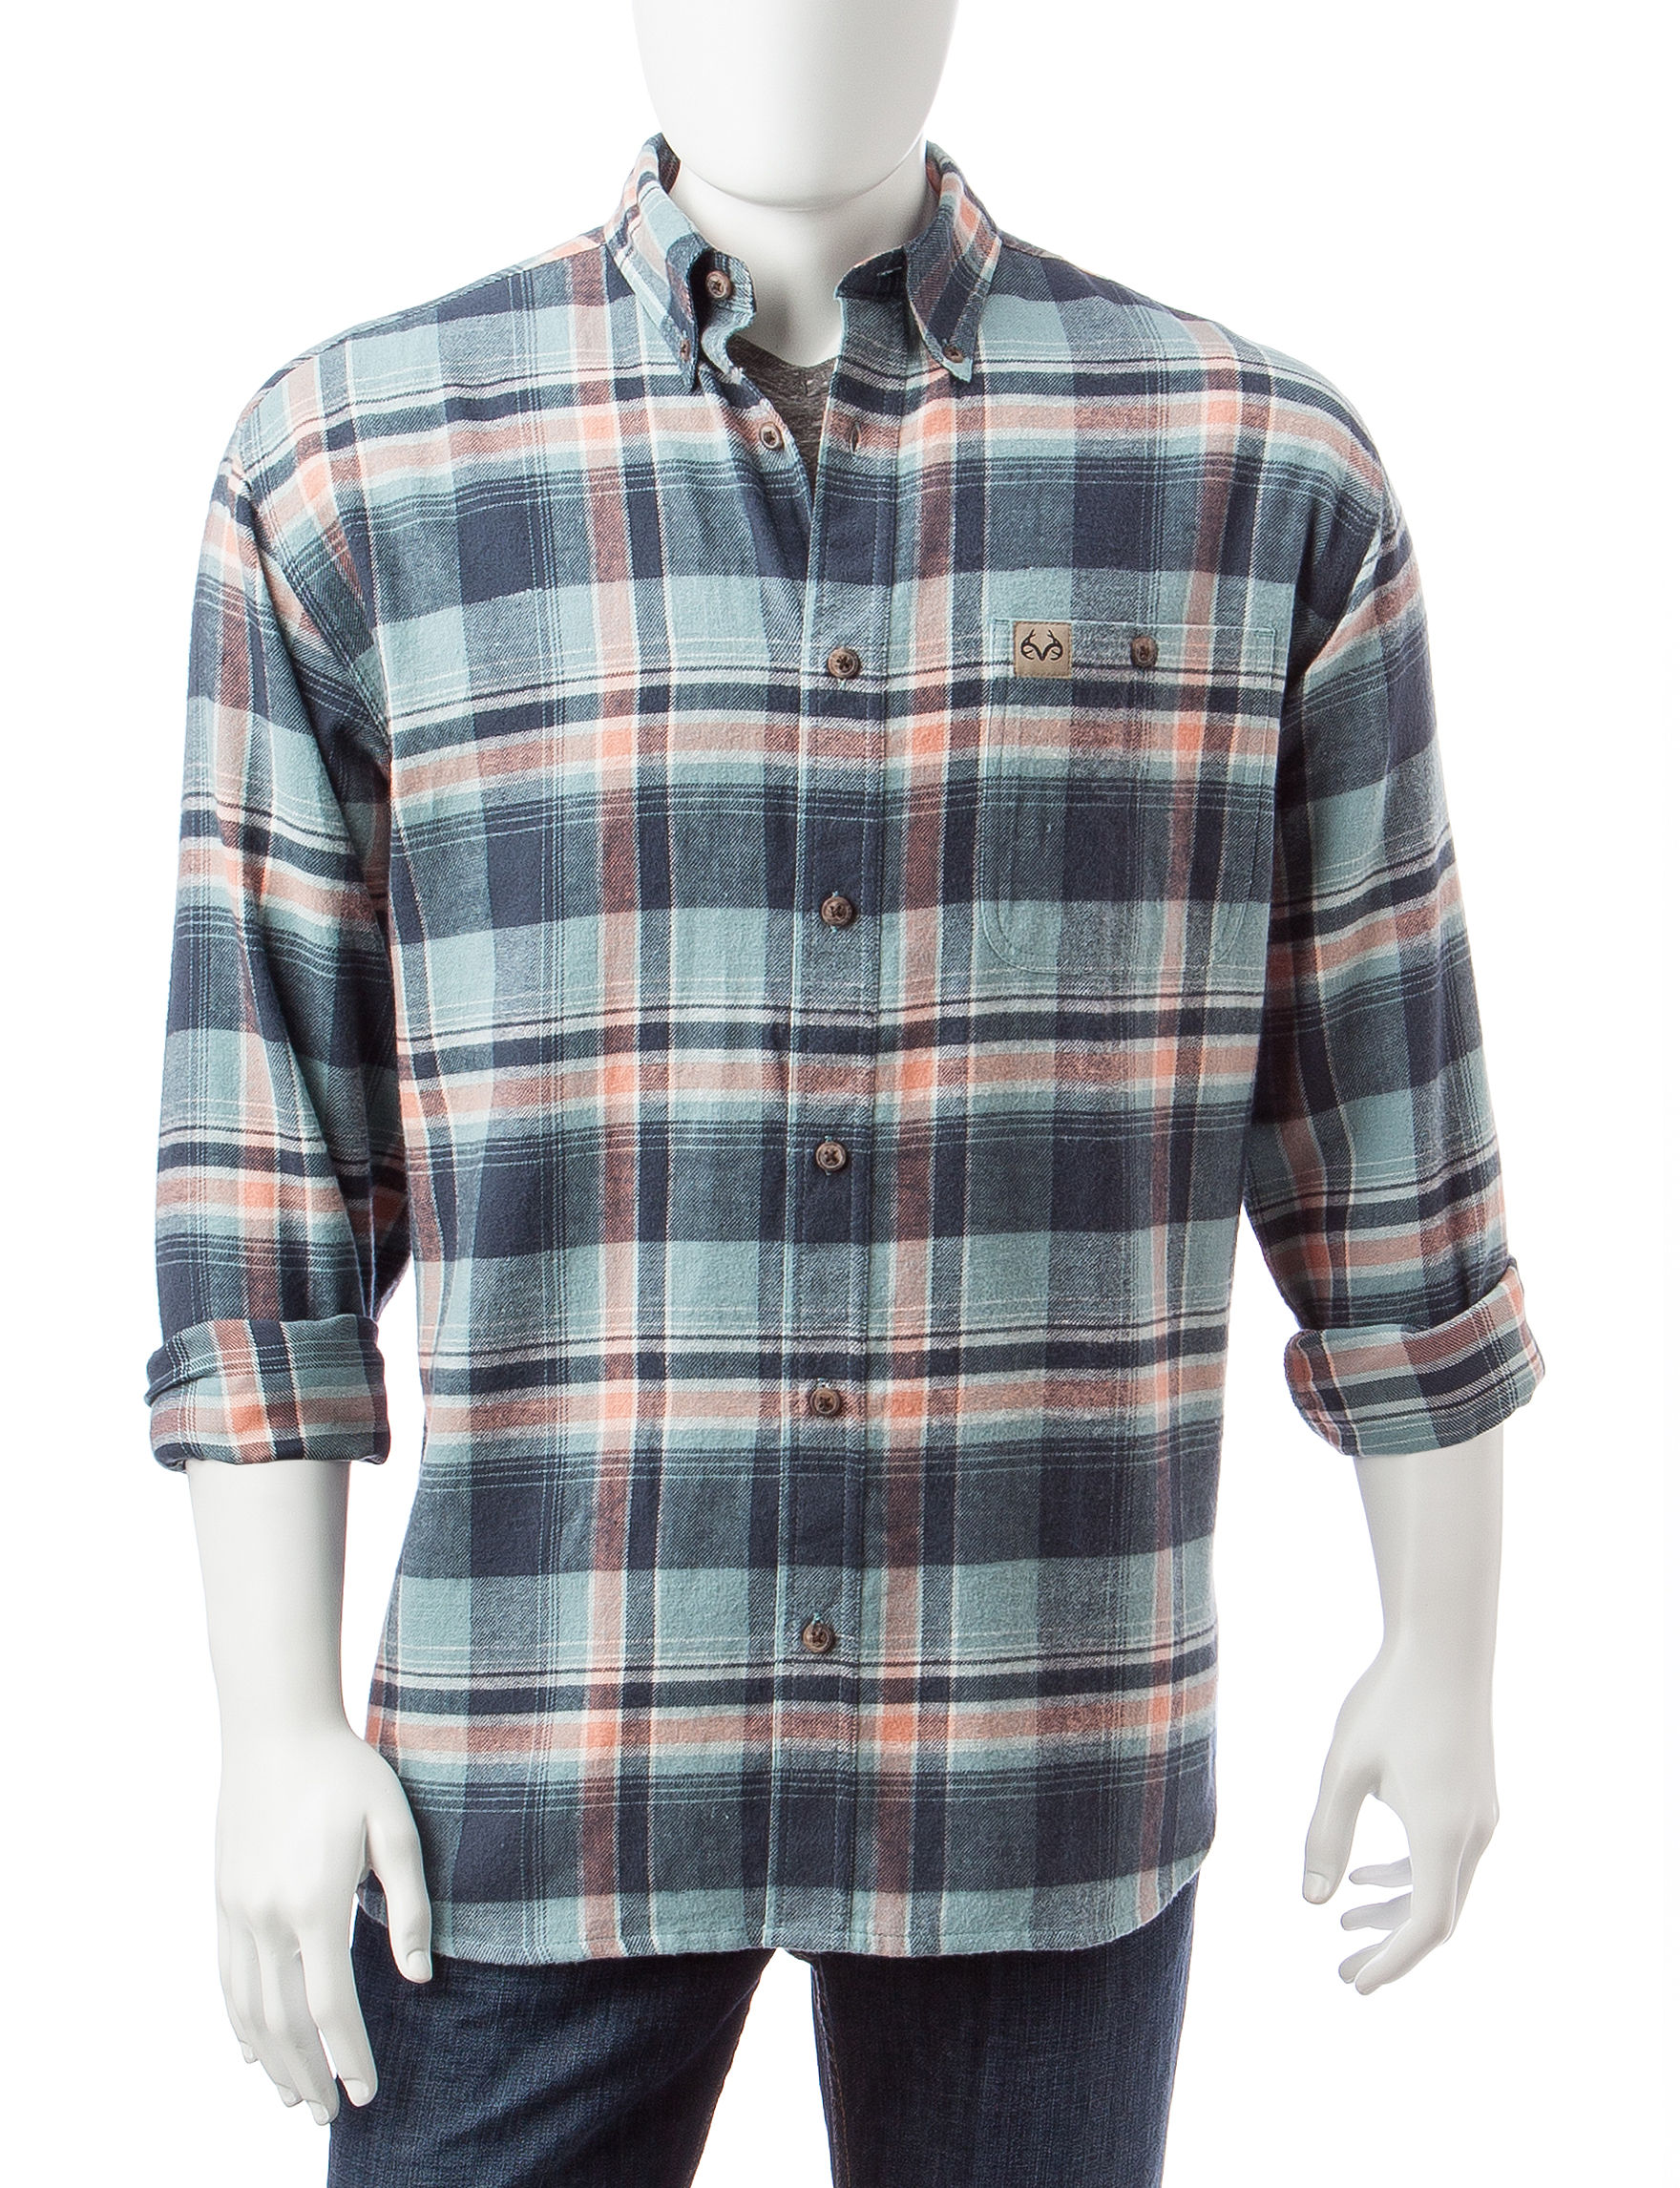 Realtree Charcoal Casual Button Down Shirts